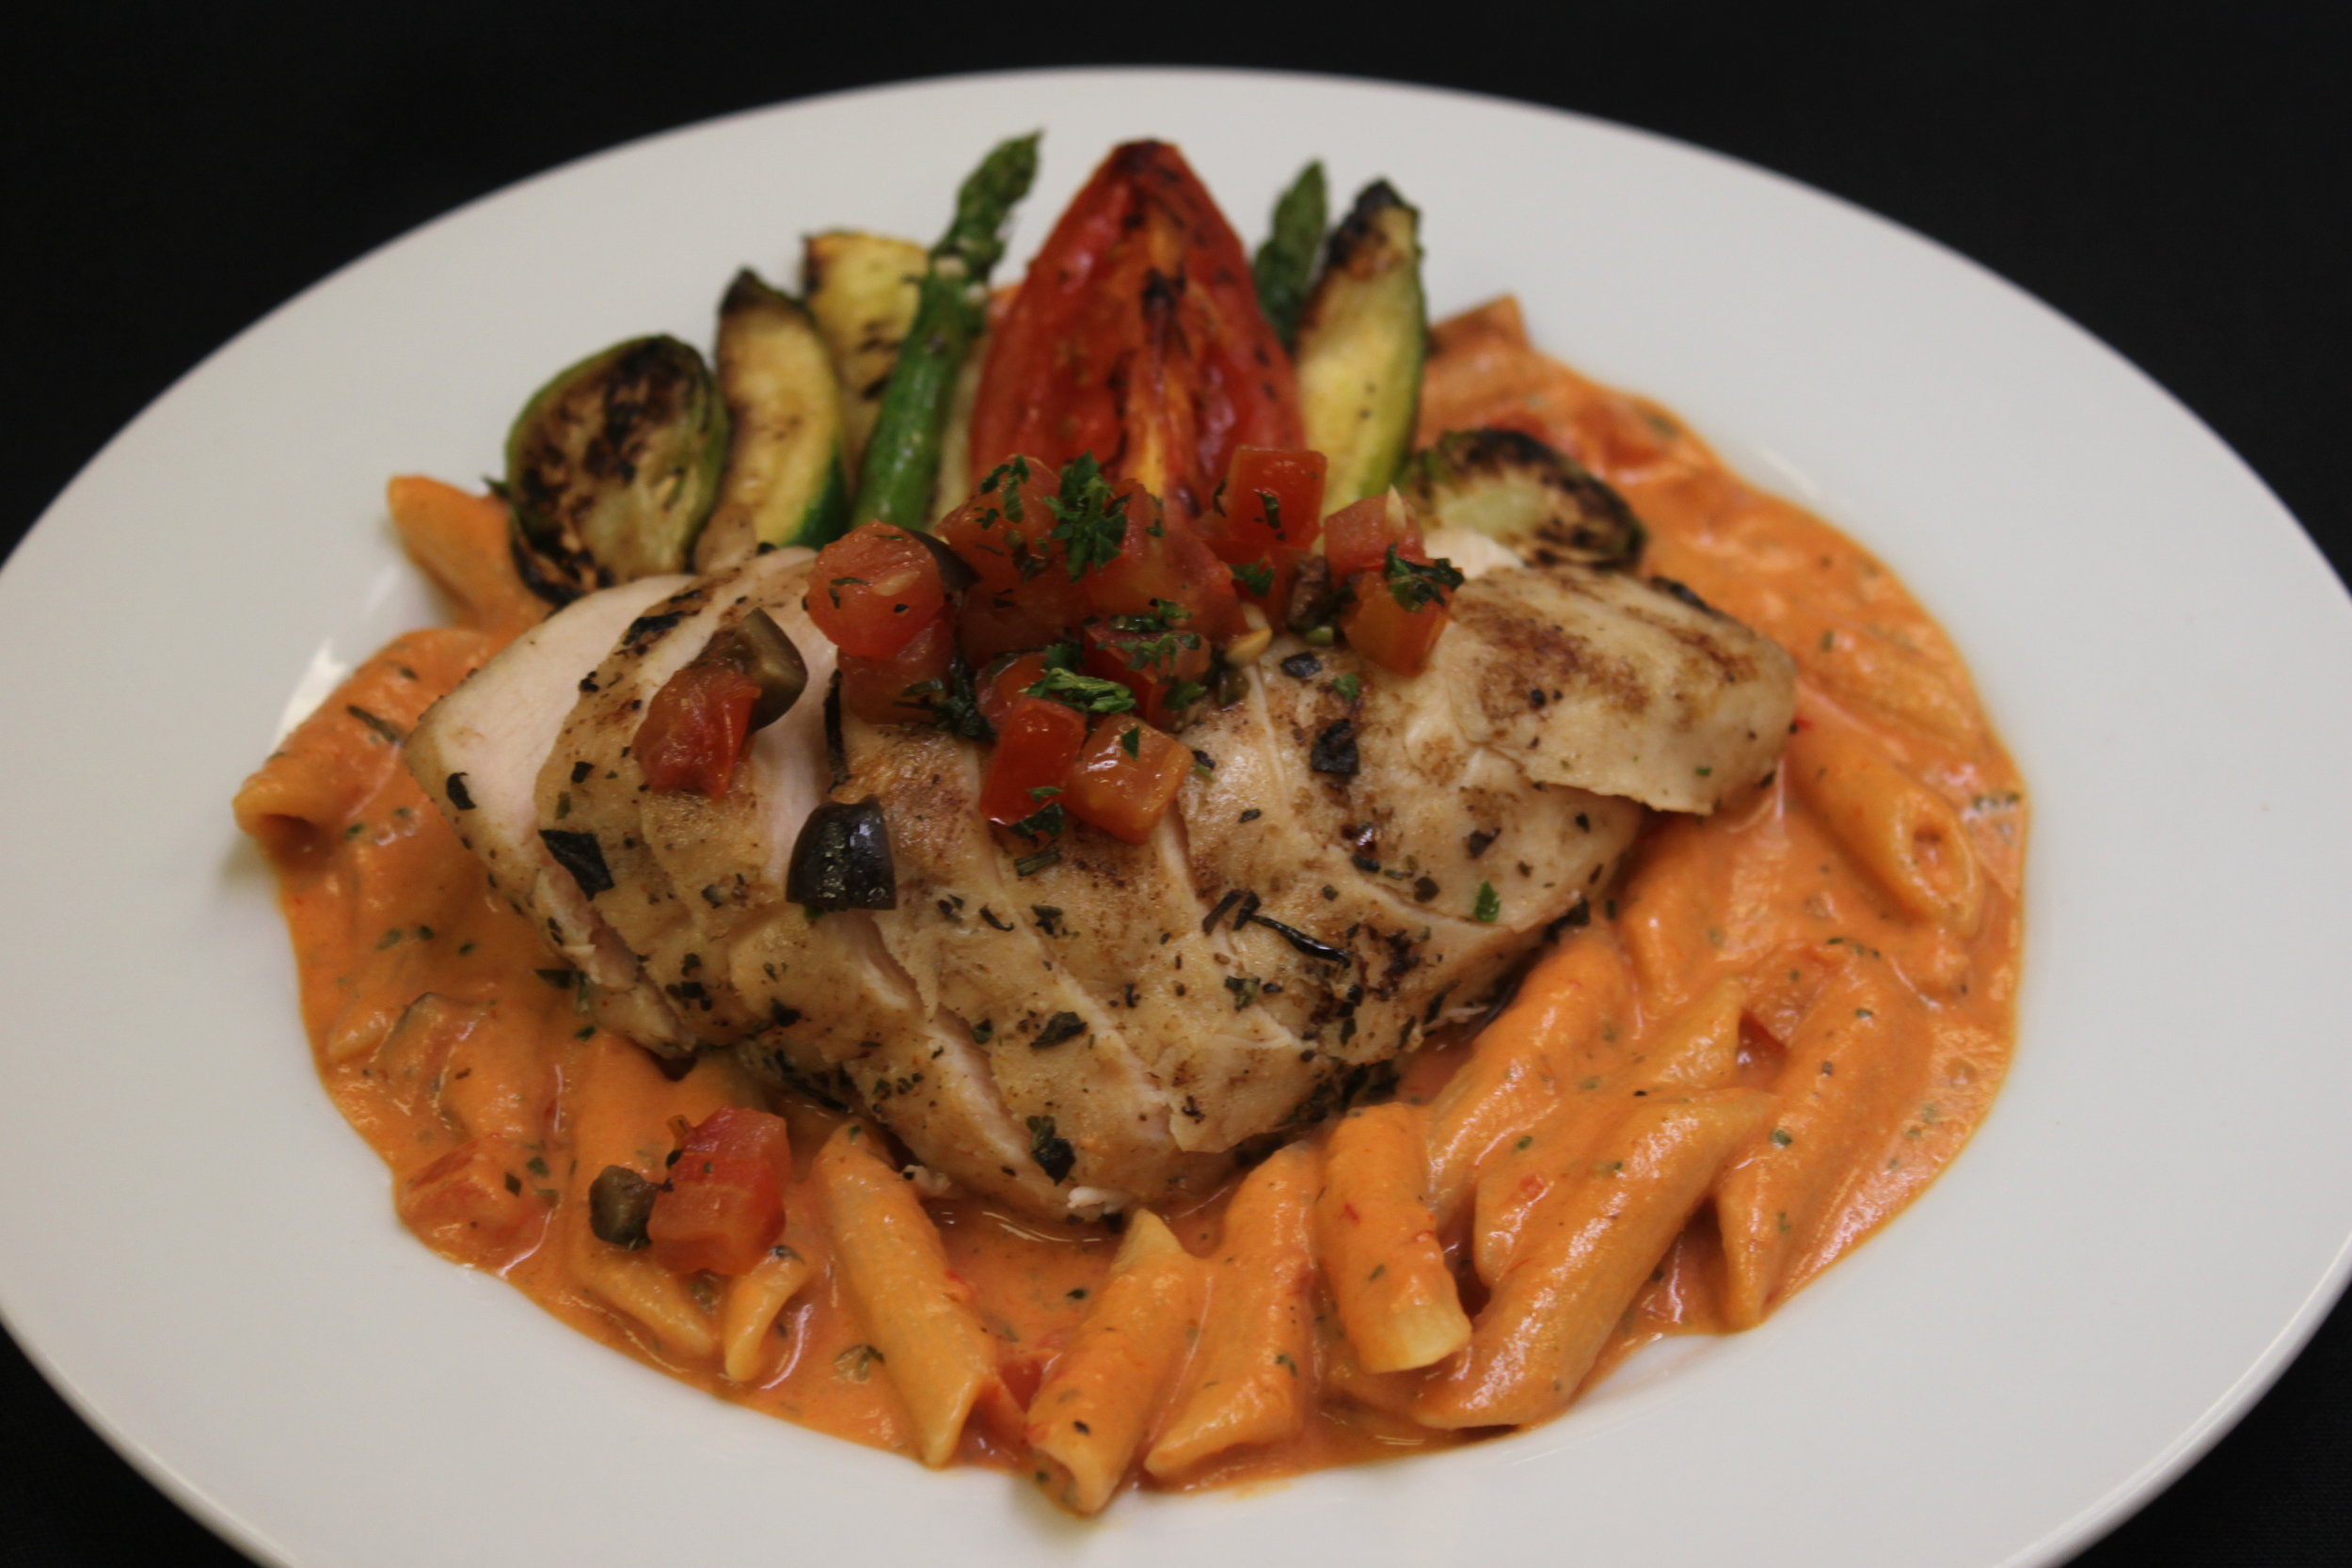 Penne Mozzarella Pasta with Grilled Mediterranean Herb Chicken Breast